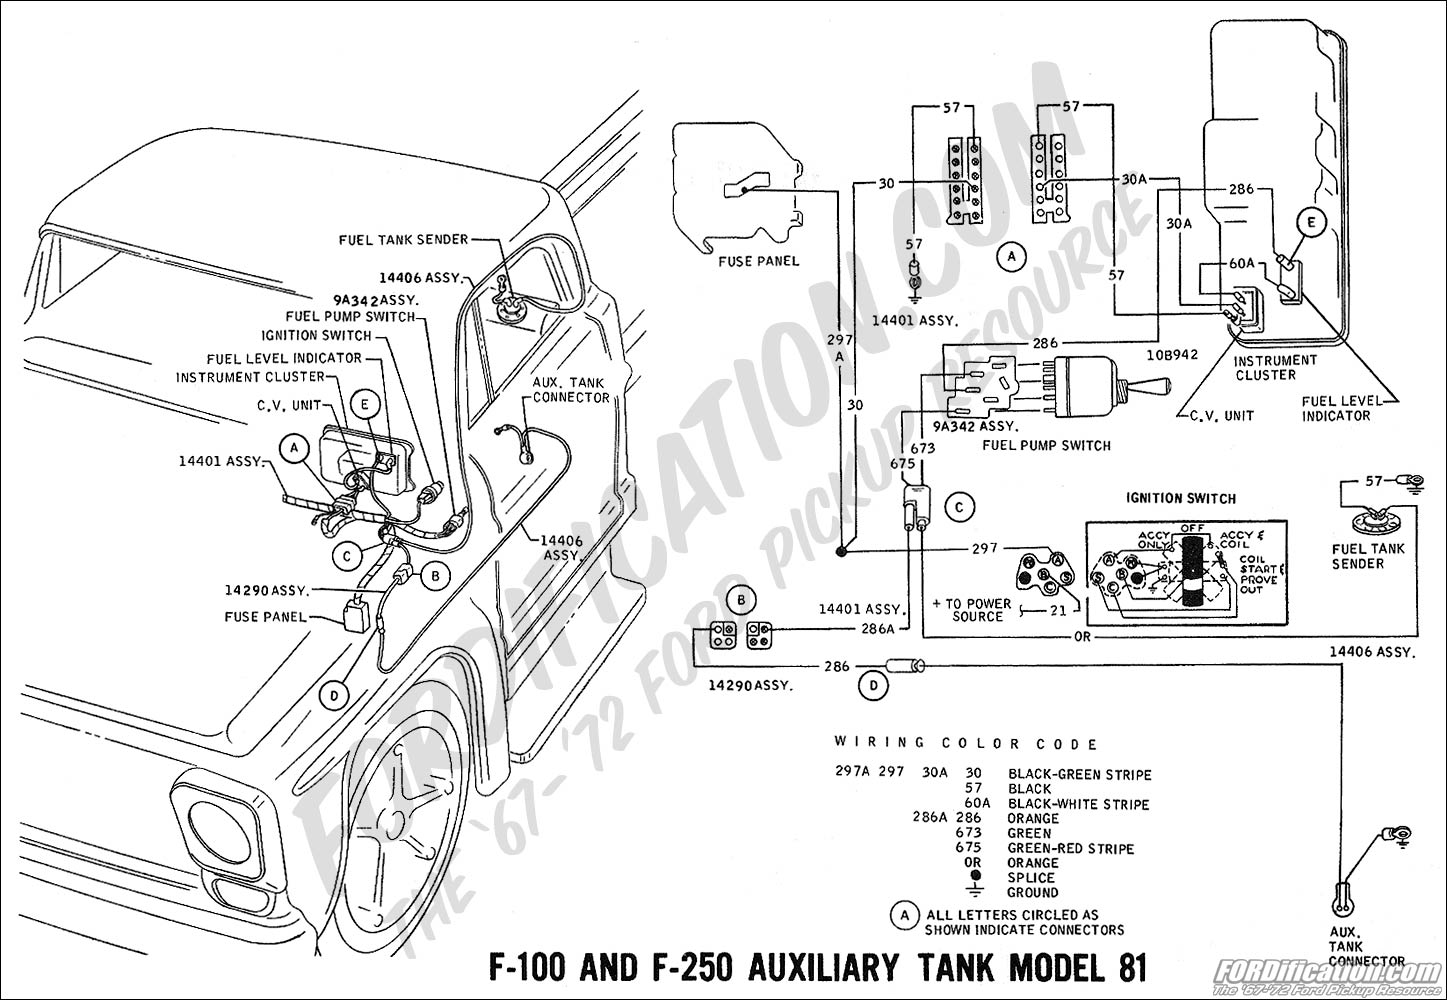 1979 F150 Fuse Panel Diagram Wiring Diagram Expert